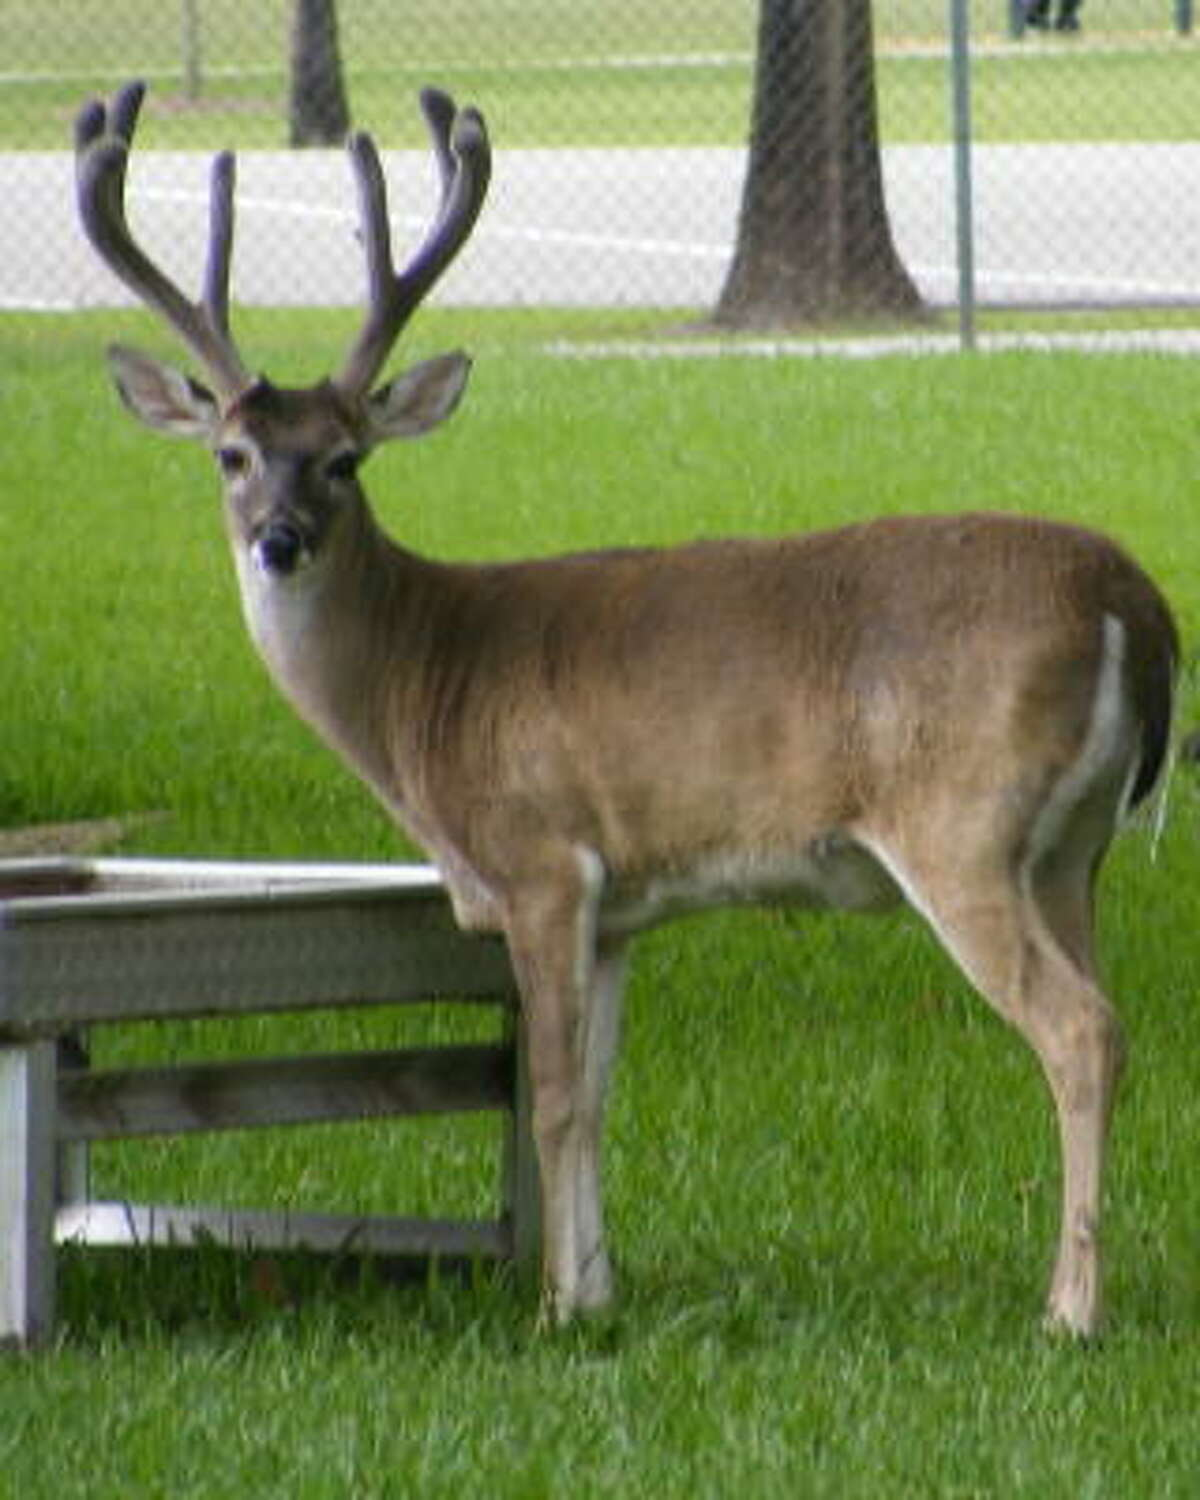 Officials said the deer, named Mr. Buck, was a favorite of schoolchildren at Bear Creek Pioneers Park.